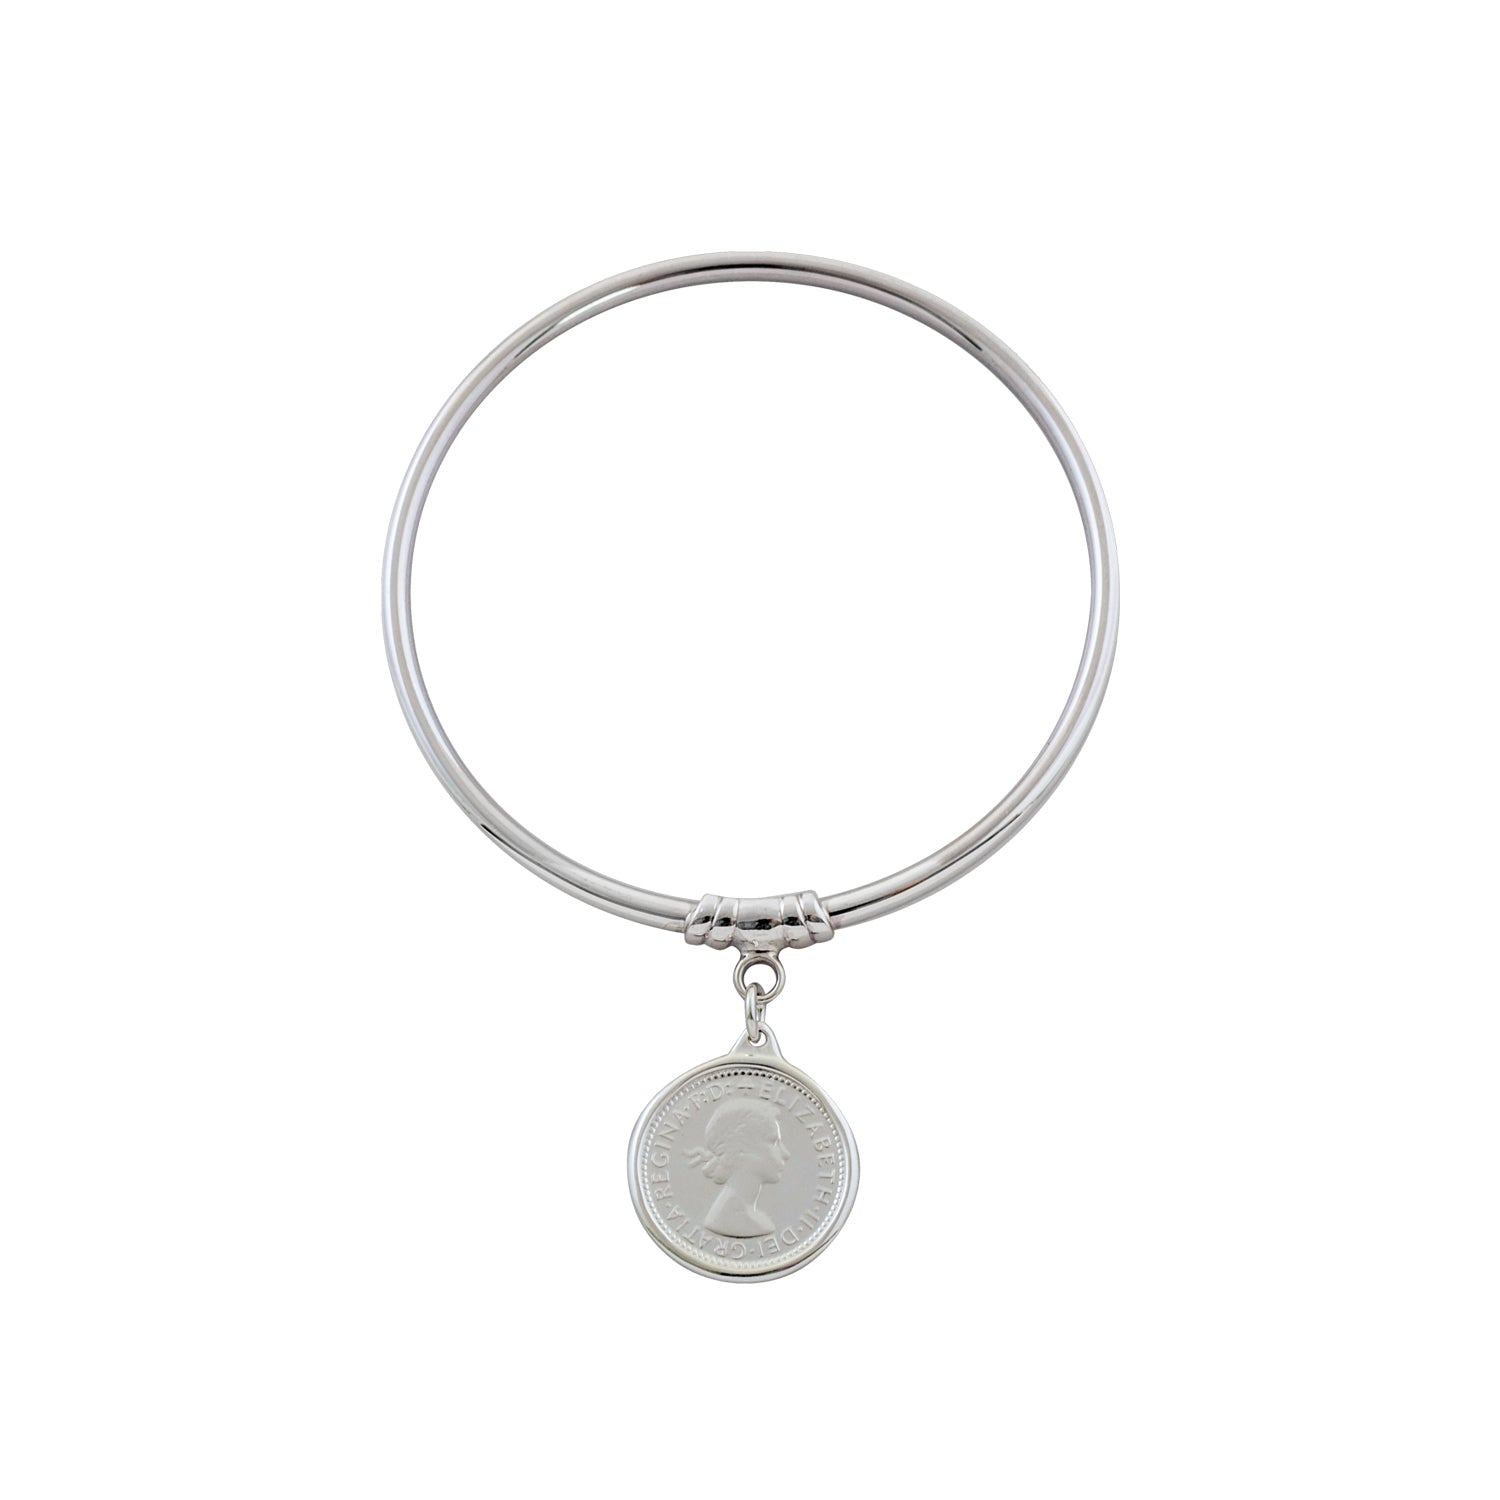 Von Treskow Sterling Silver 3mm Bangle w/ 6 Pence Coin